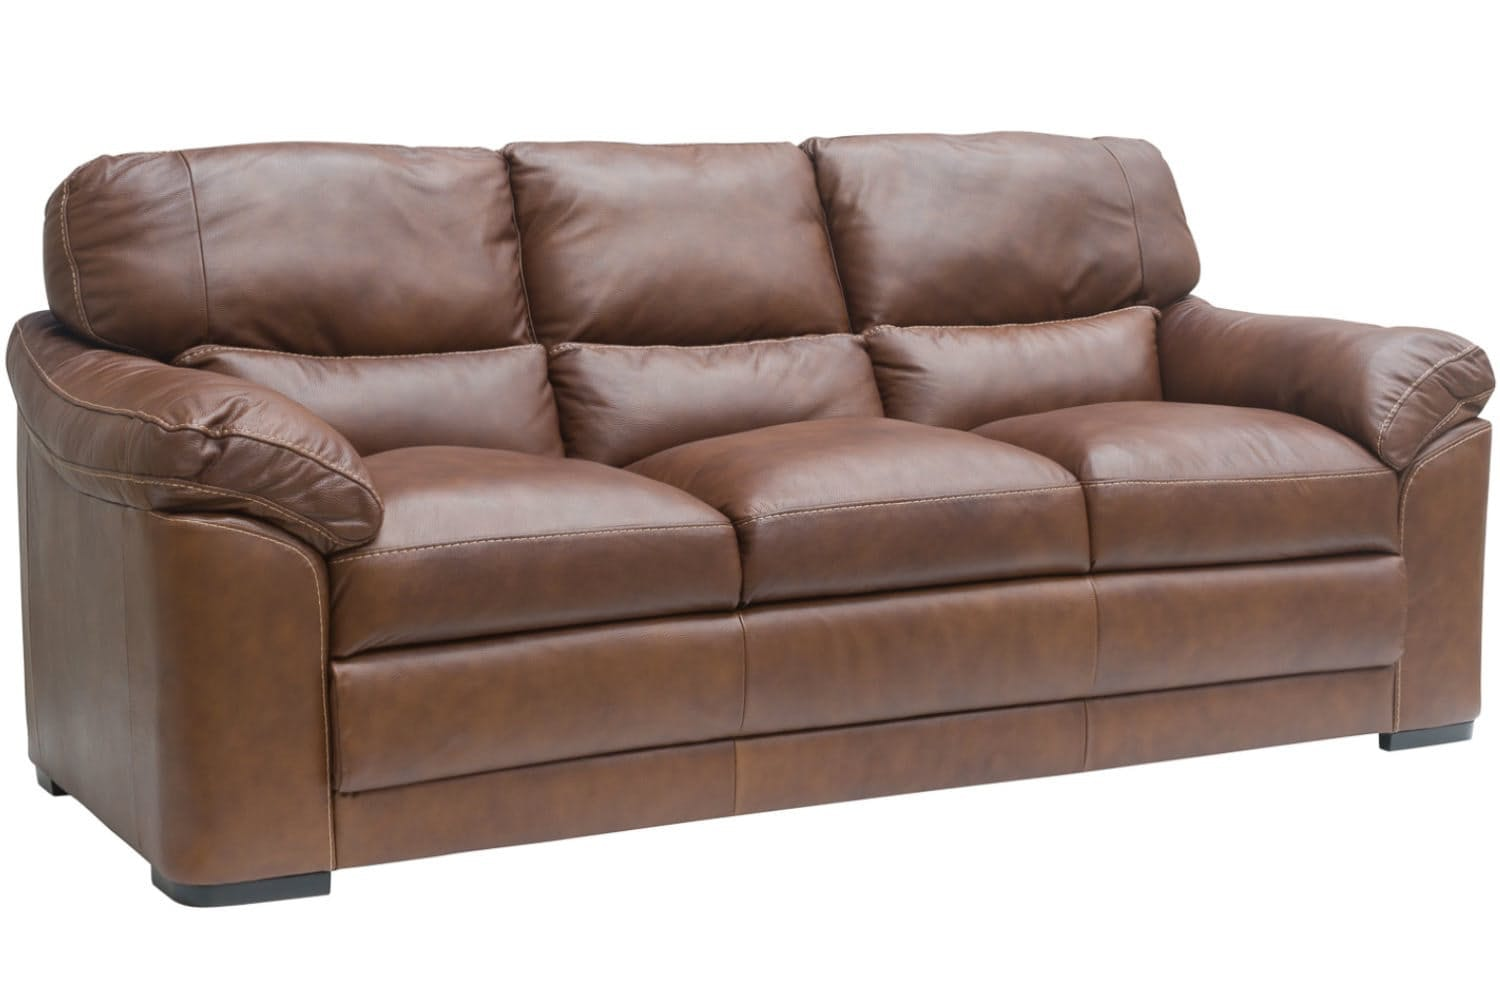 Senna Leather 3 Seater Sofa